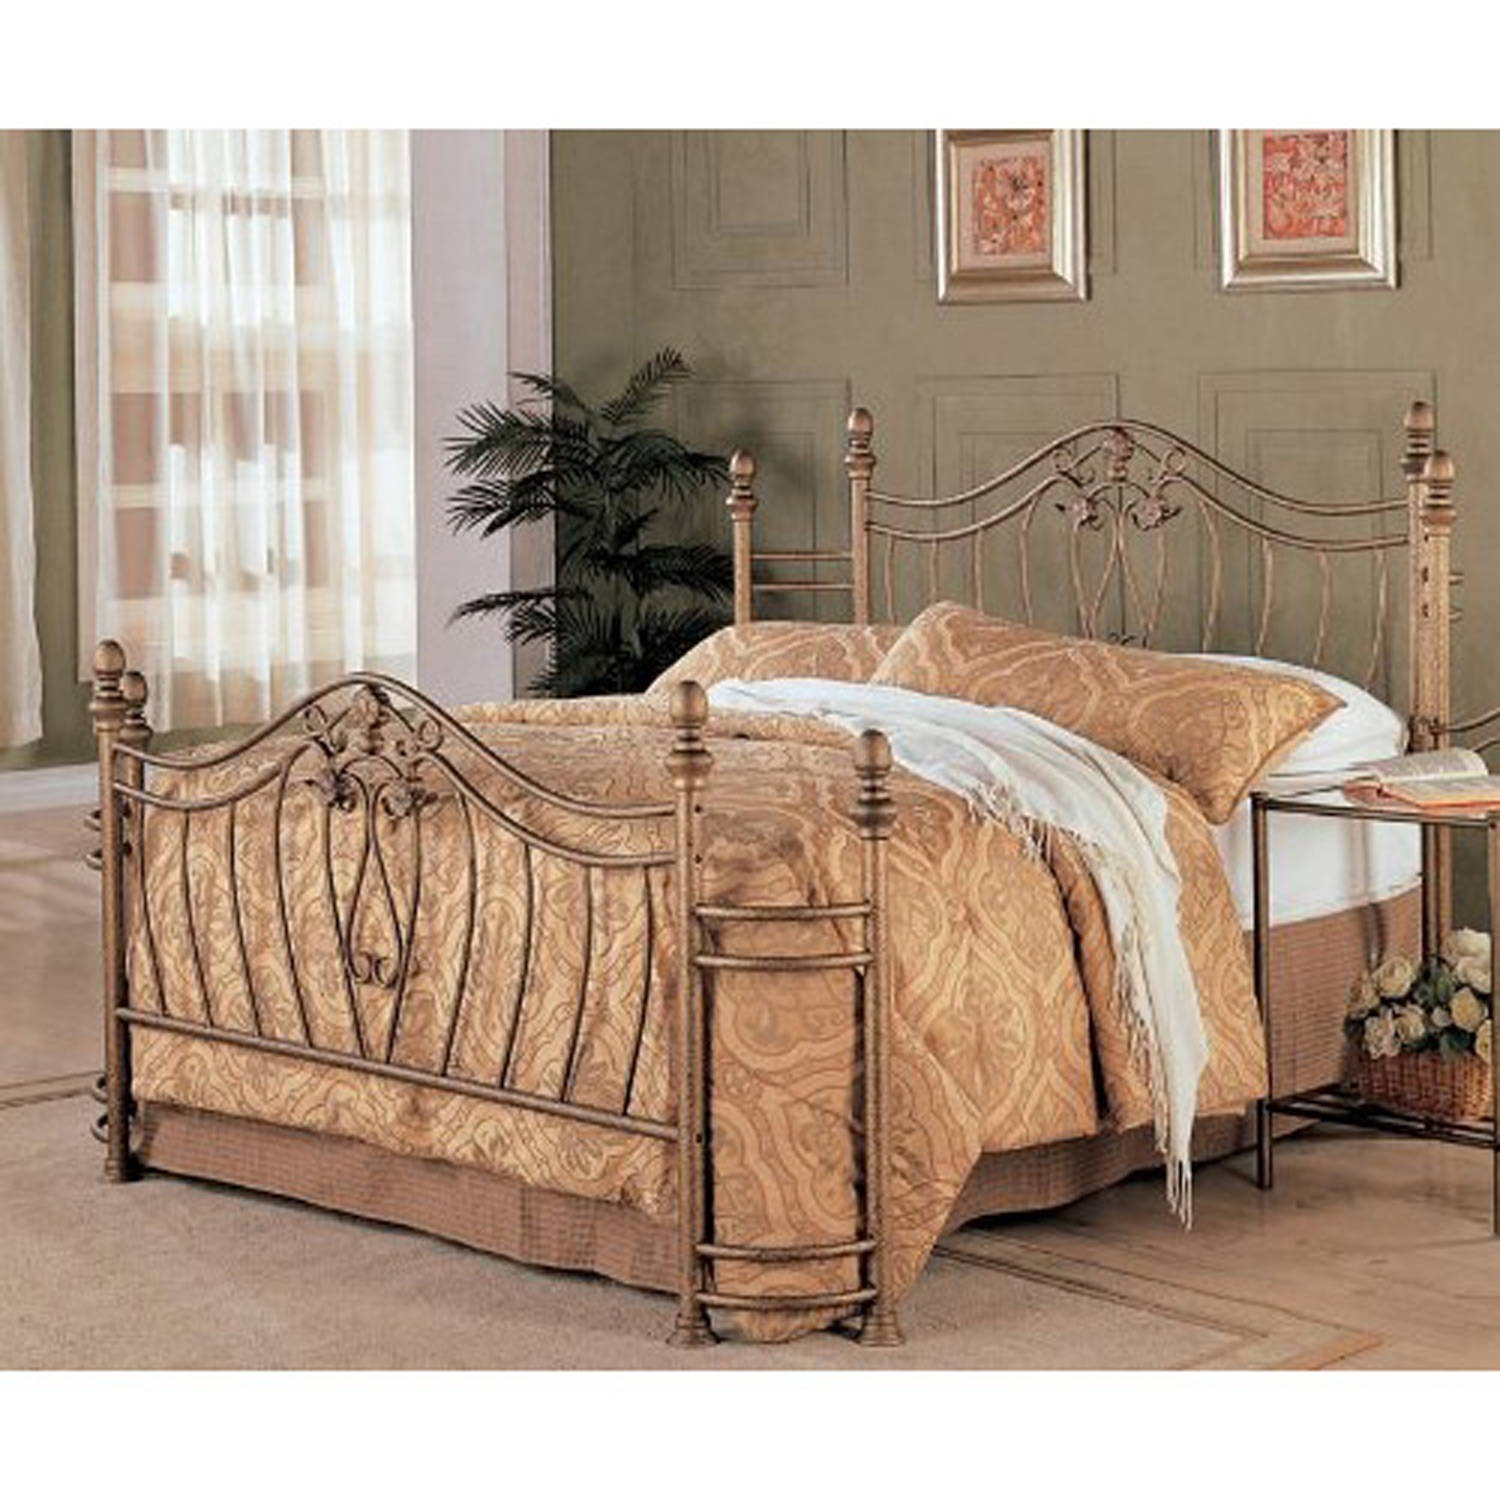 Picture of: Queen Size Metal Bed With Headboard And Footboard In Antique Brushed Gold Finish Fastfurnishings Com